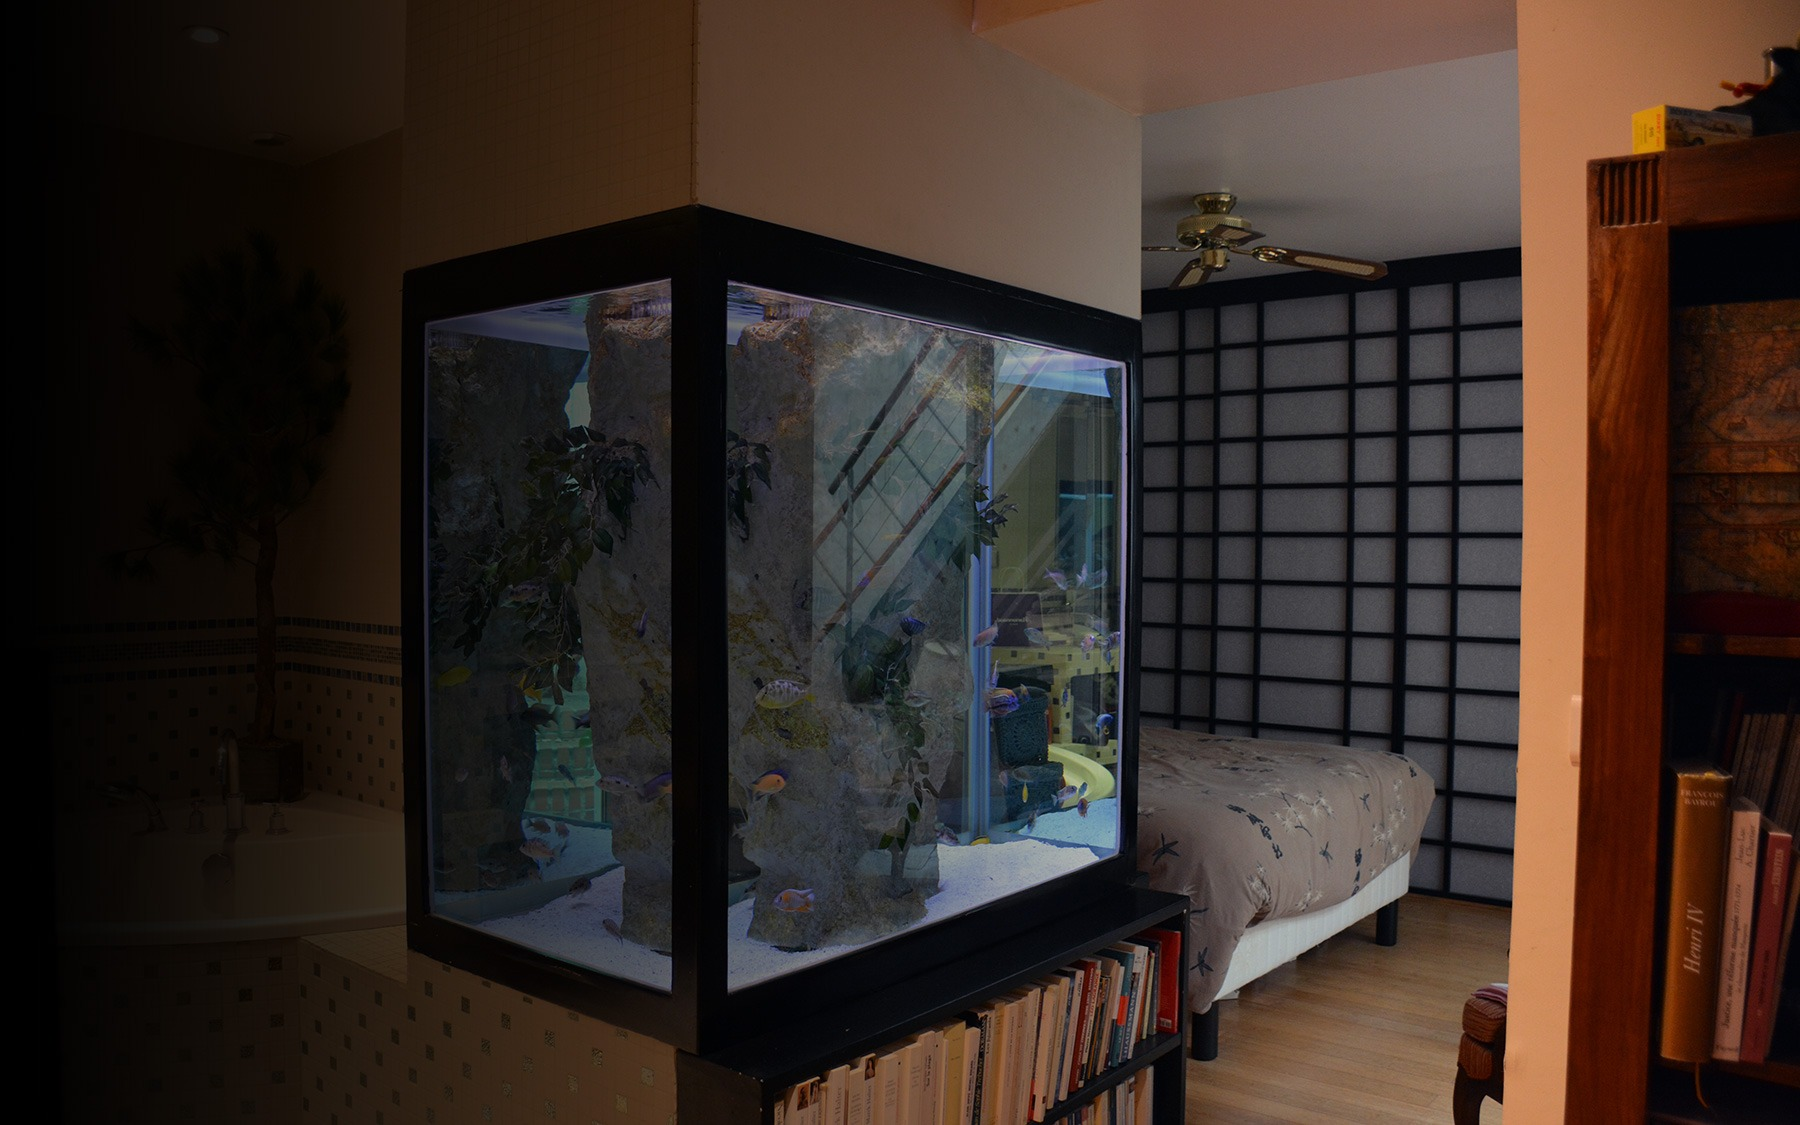 Aquarium sur mesure de cichlid s africains oc an d 39 interieur for Aquarium interieur